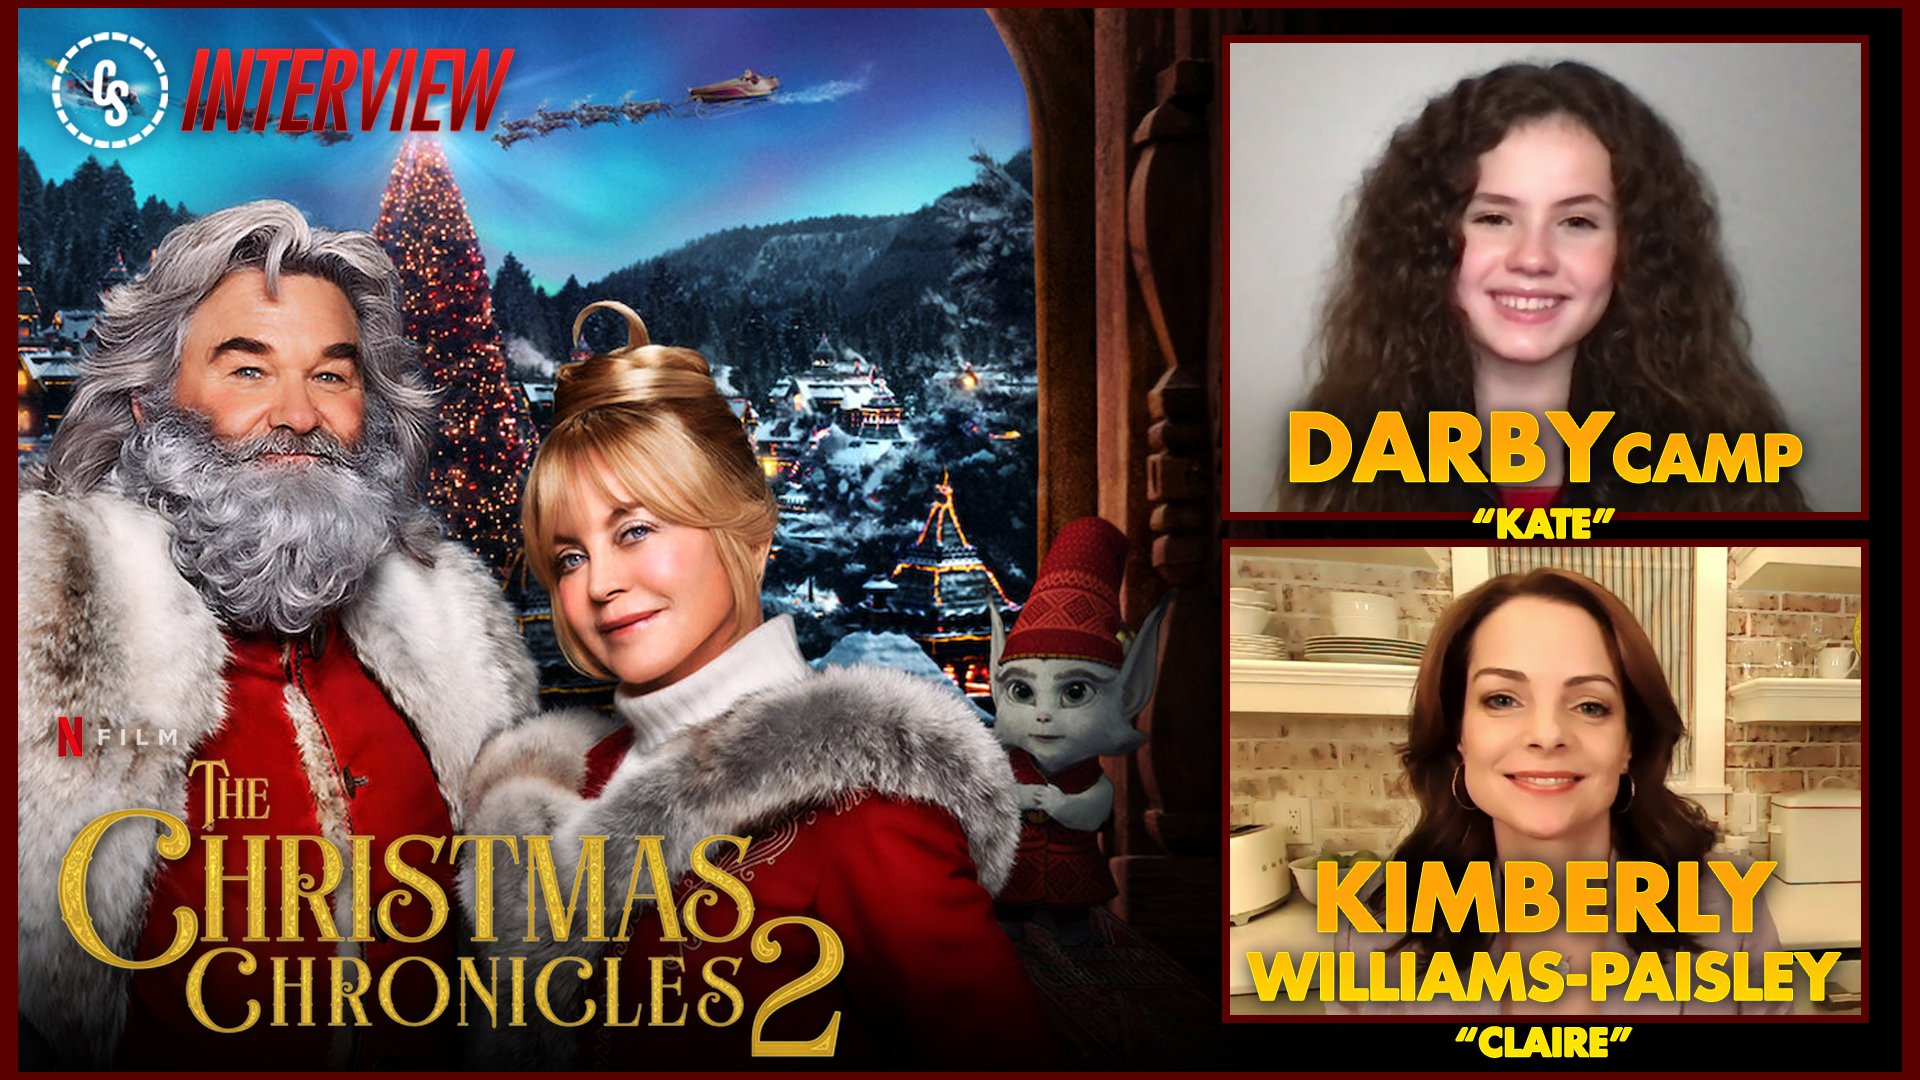 CS Video: The Christmas Chronicles: Part Two Interview With Camp & Williams-Paisley